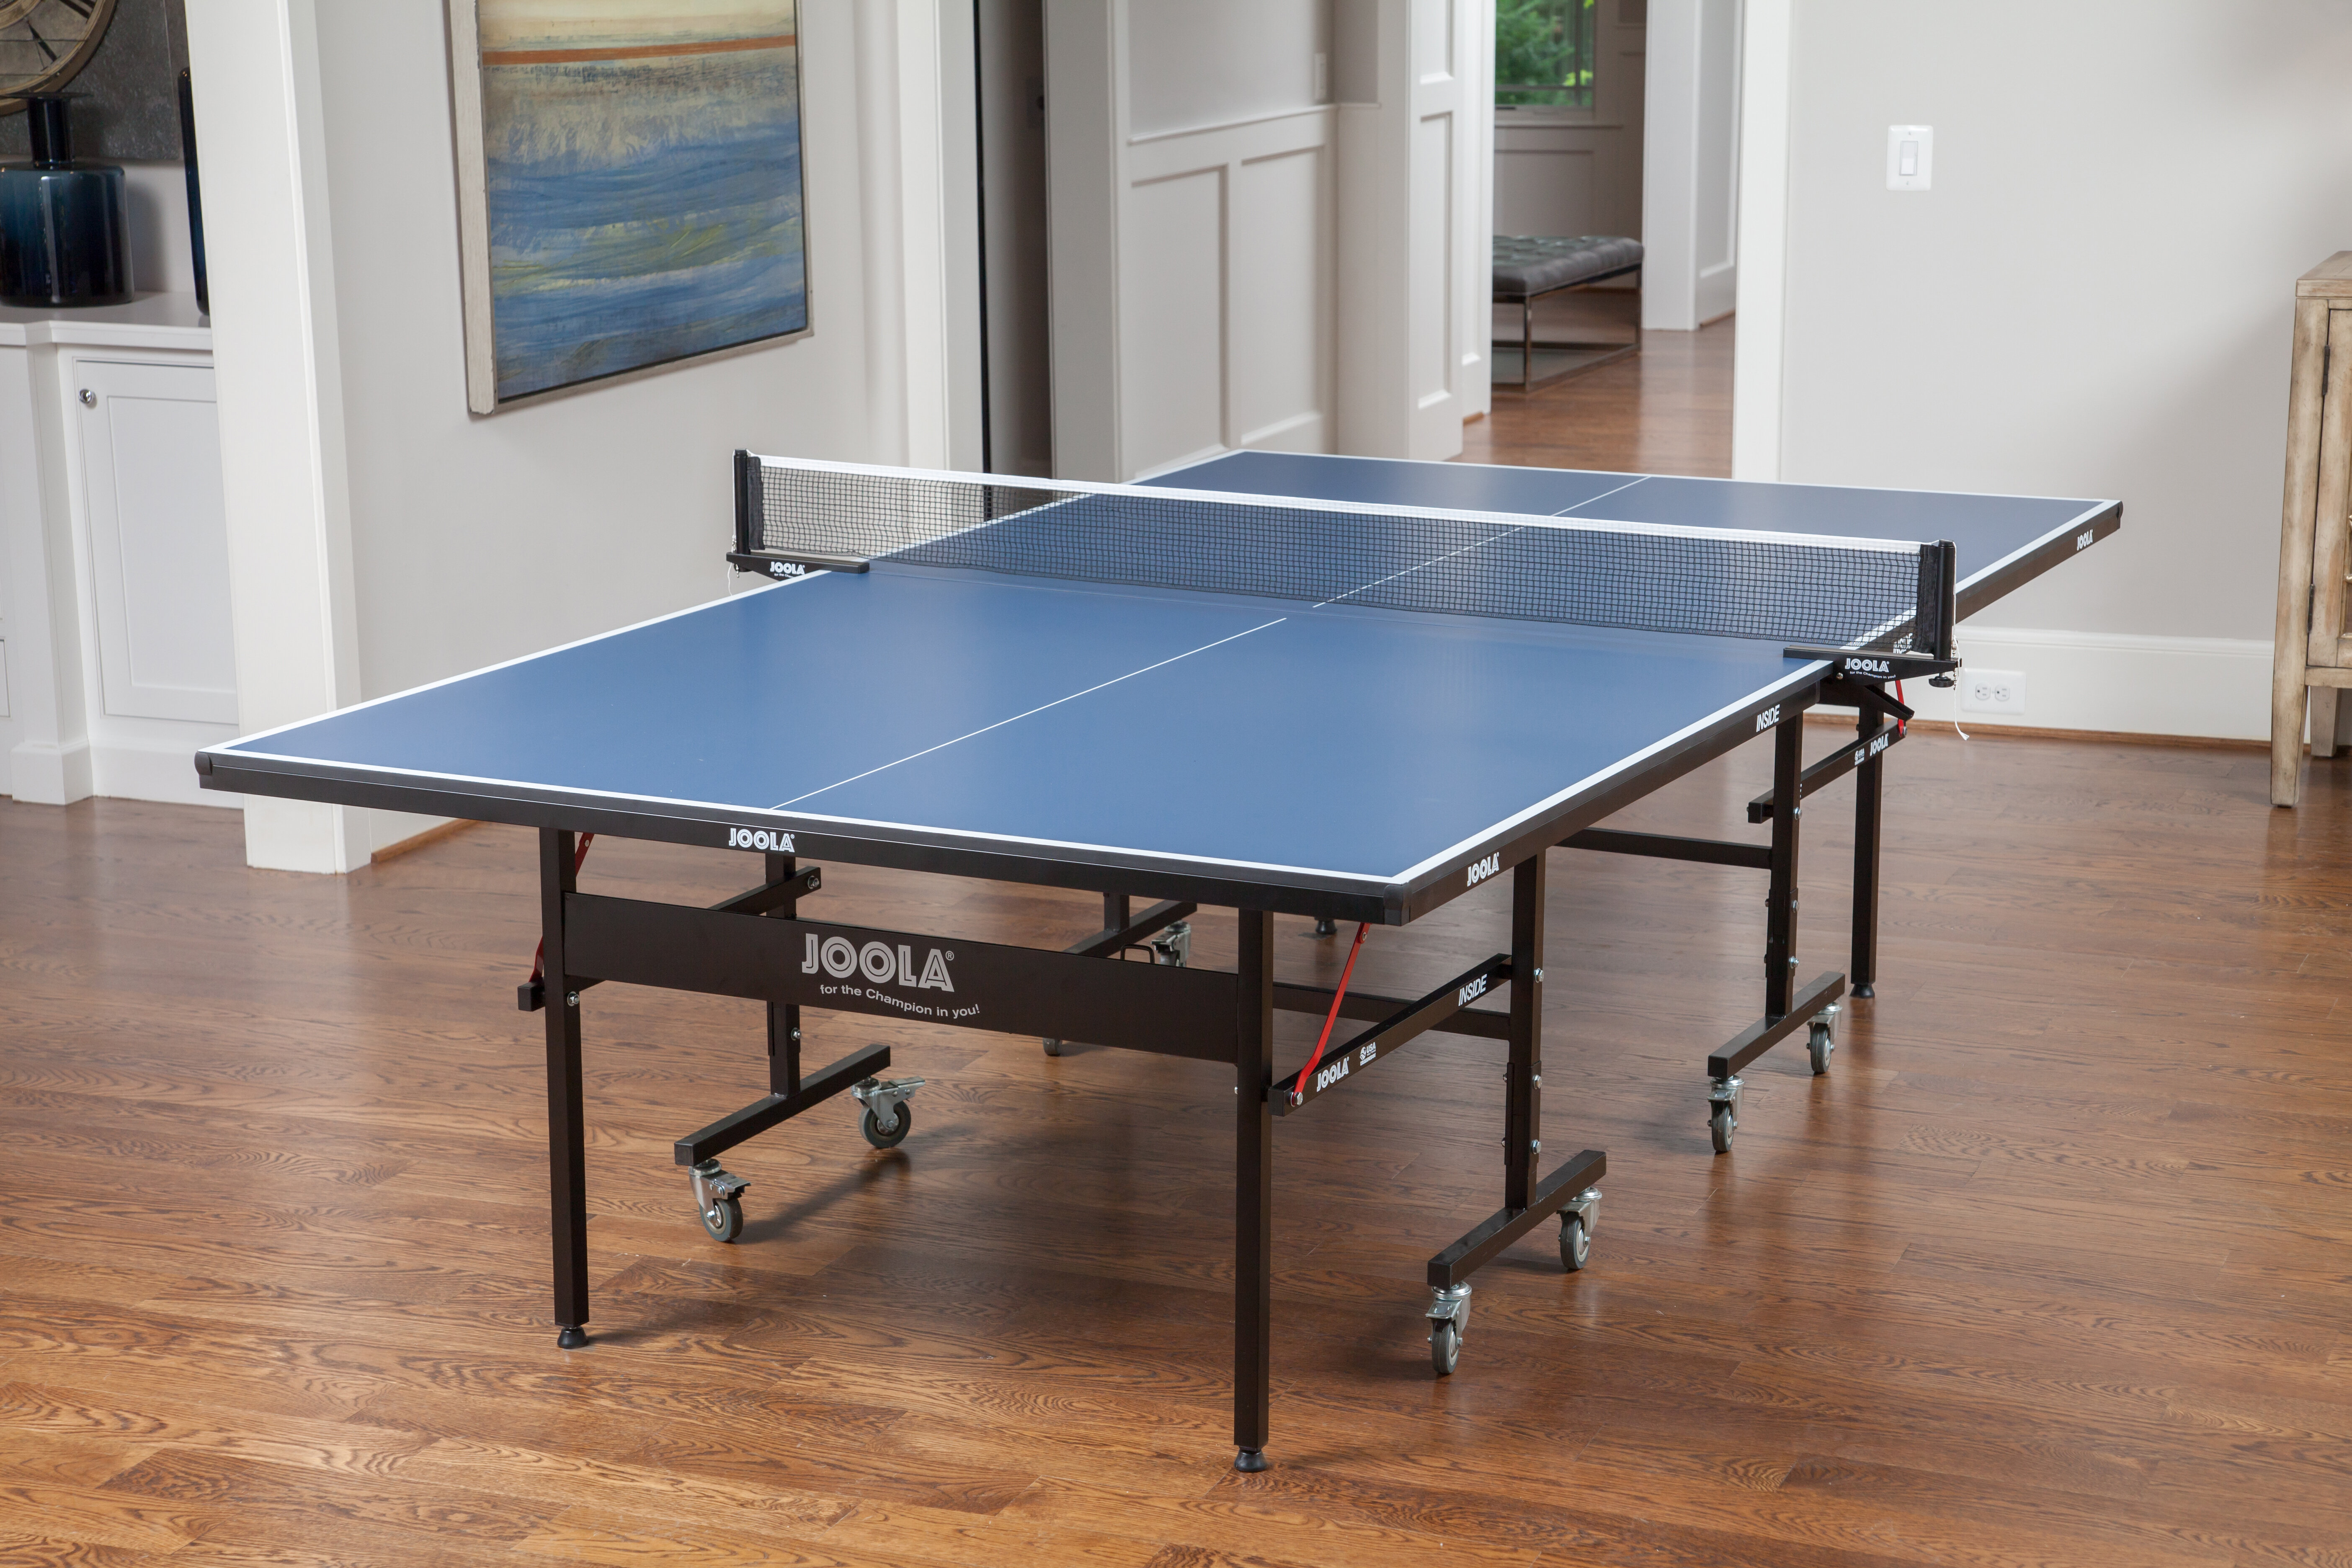 Marvelous Joola Indoor Table Tennis Table U0026 Reviews | Wayfair